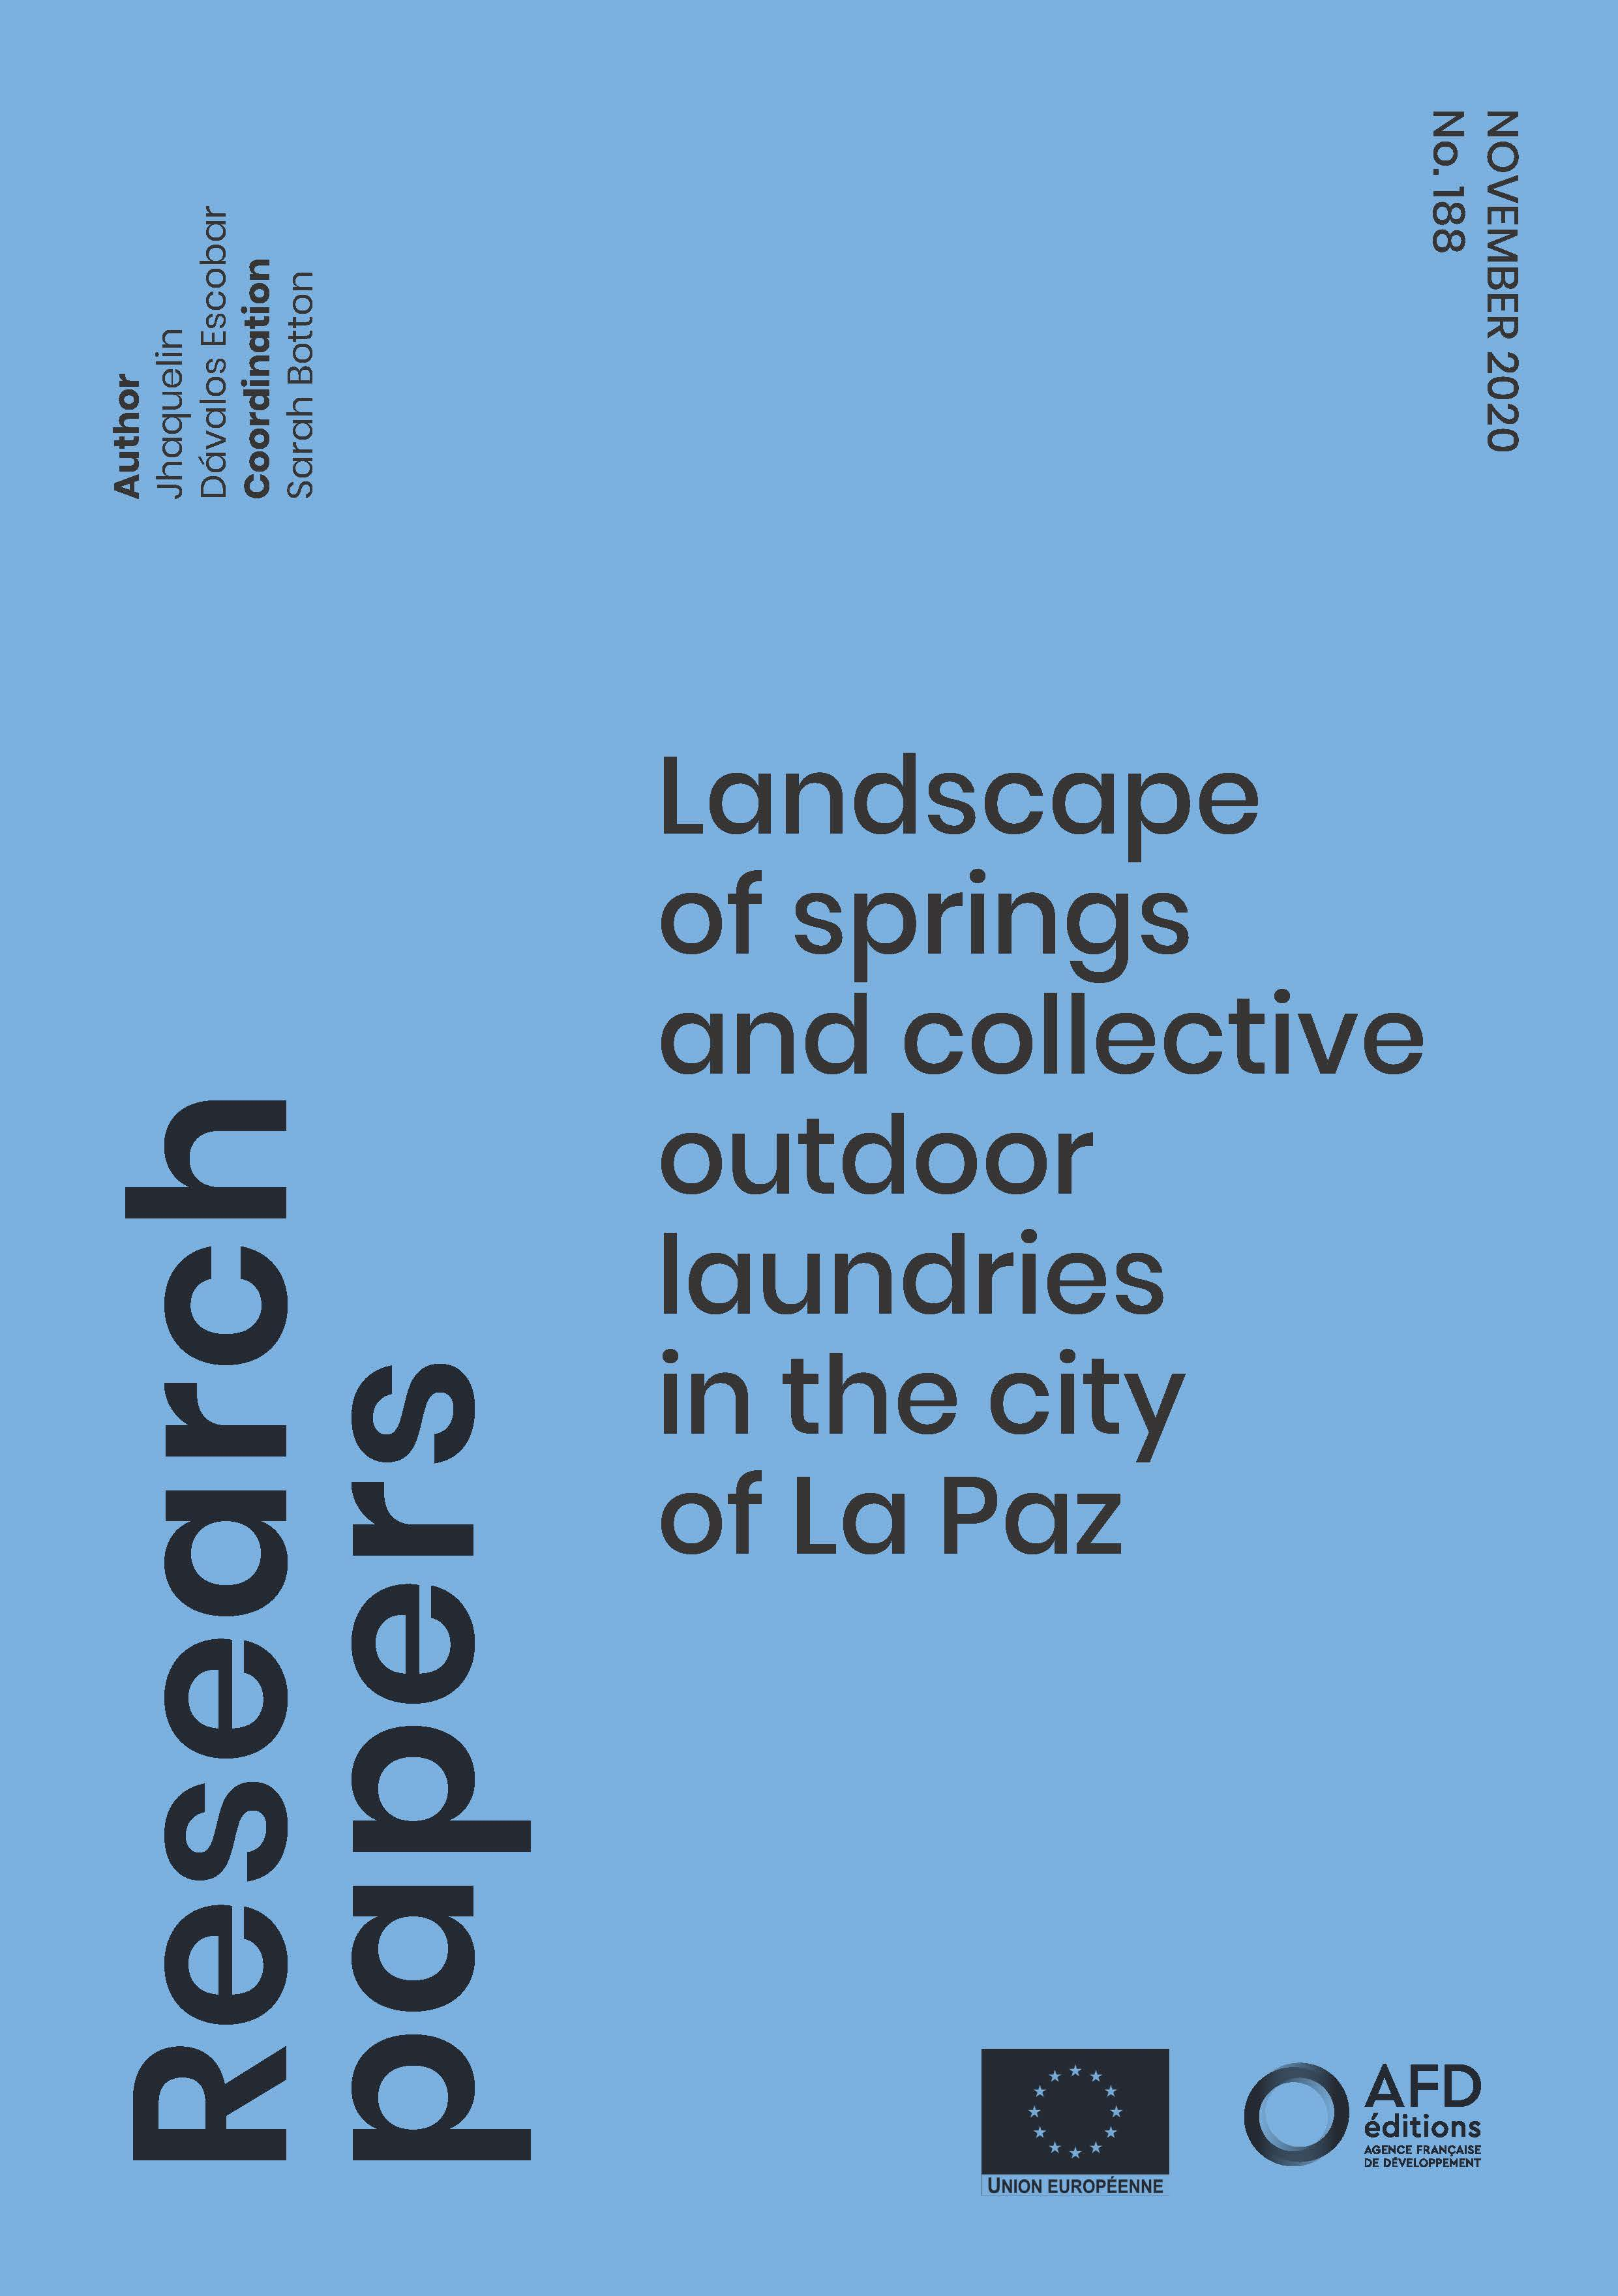 Springs and laundries La Paz_couv